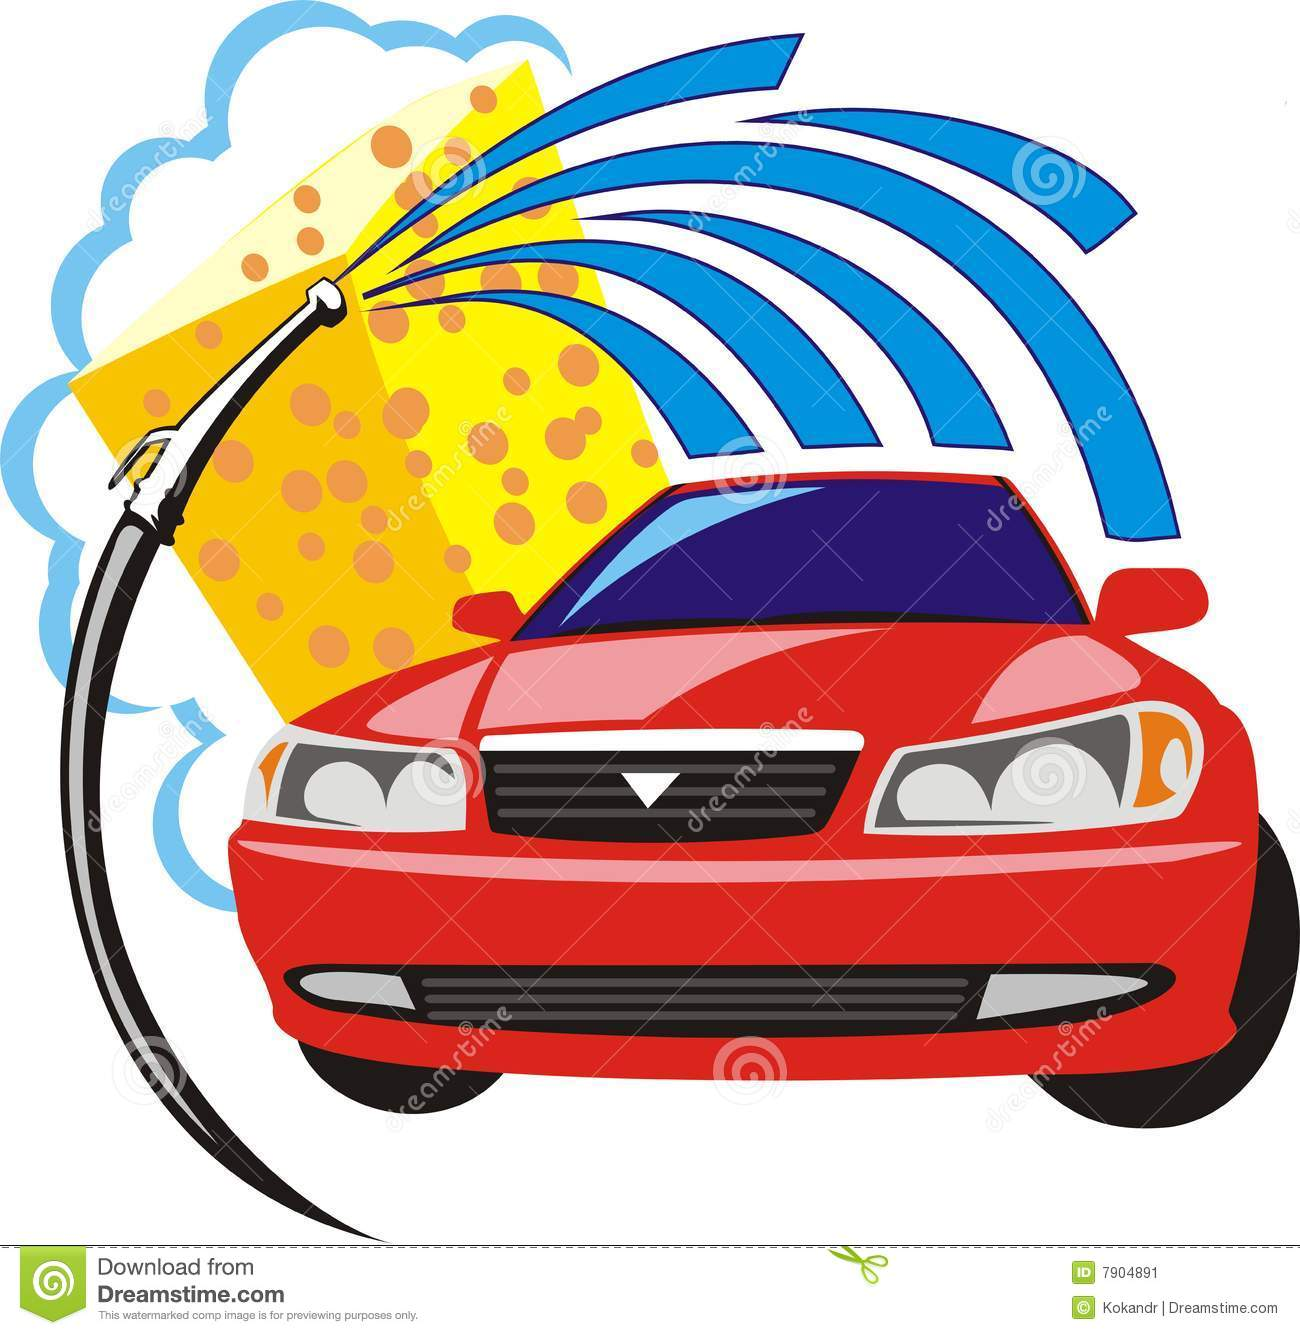 clipart for car wash - photo #27